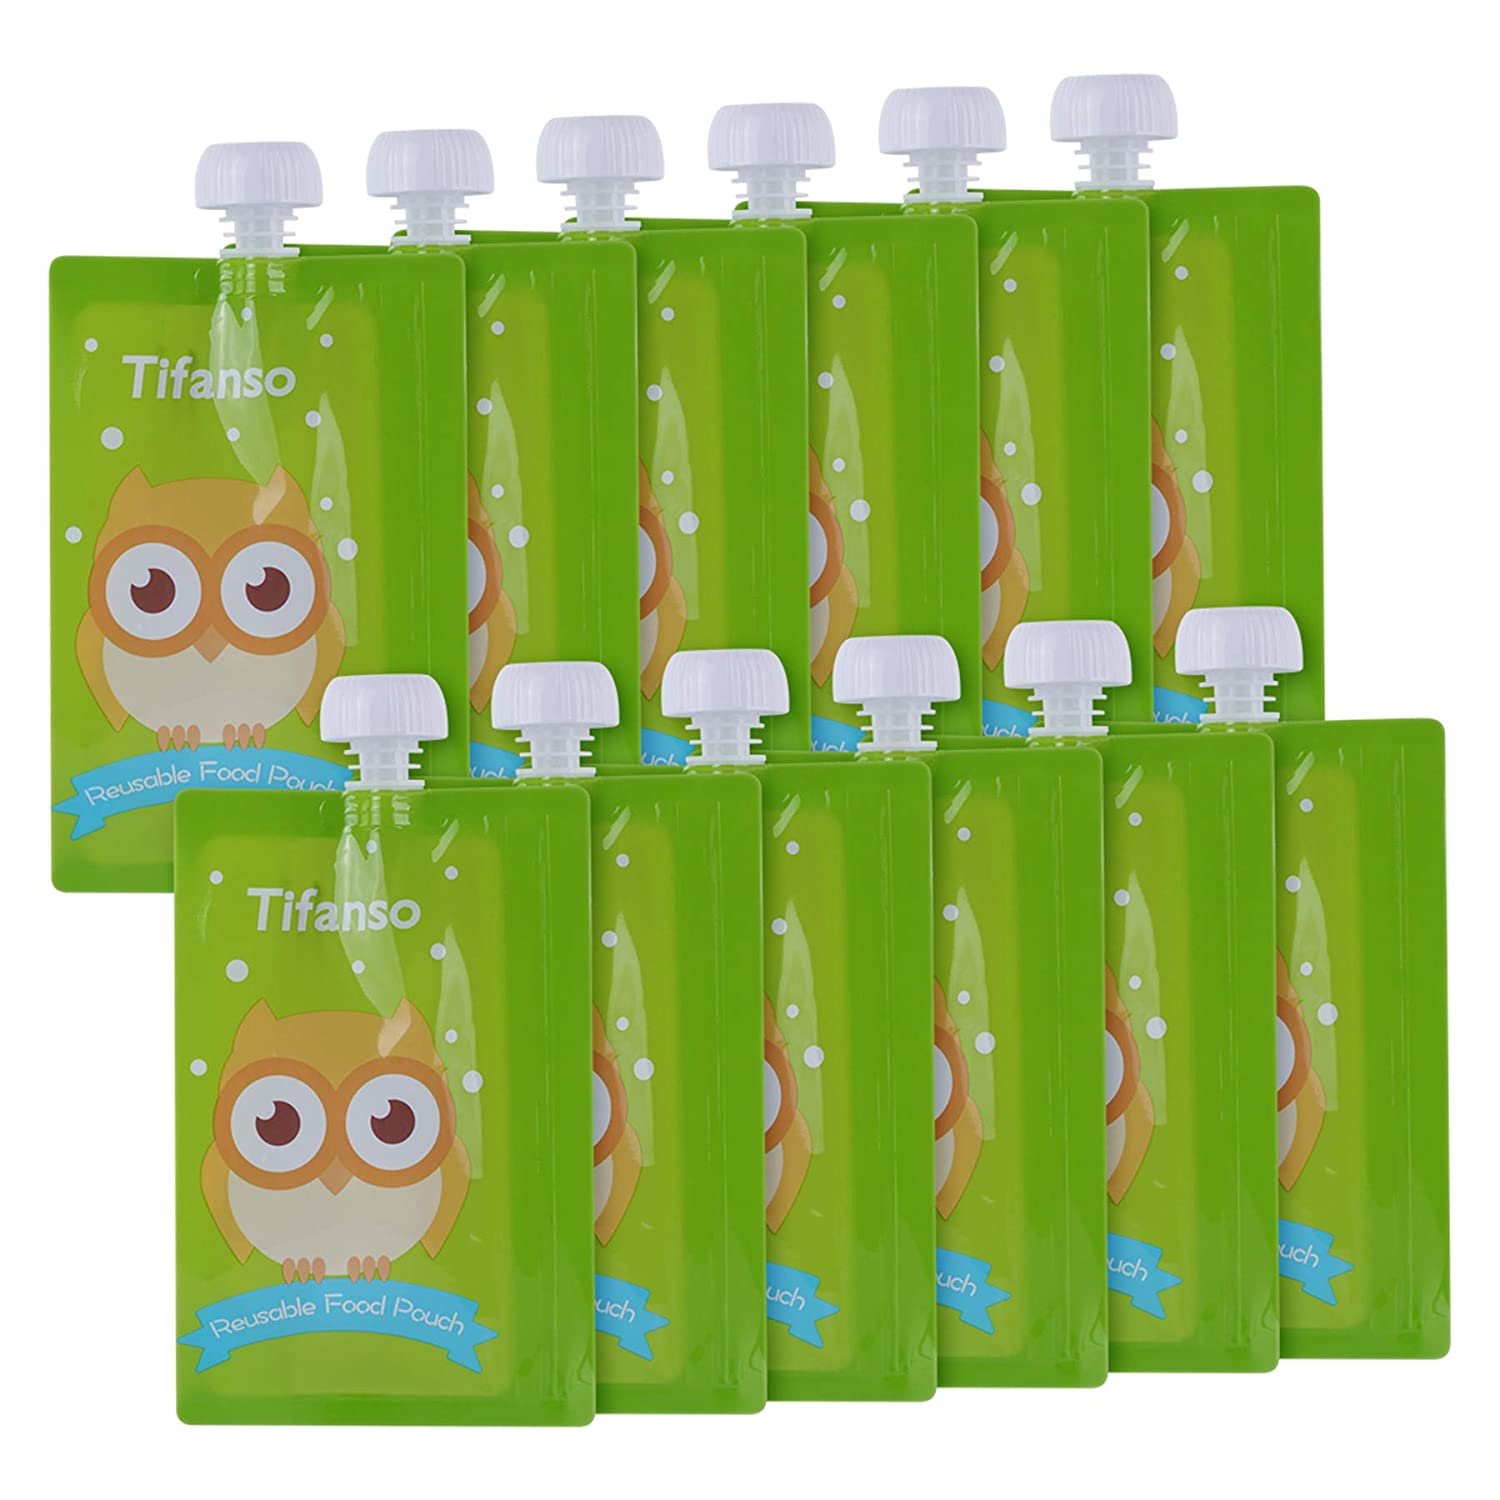 12 Pack 7 oz Owl Reusable Baby Food Squeeze Storage Pouches for Homemade Organic Baby, Toddlers, Kids Food - Easy to Fill & Clean with Leak Proof Double Zipper Refillable Pouch Plus a Flower Funnel